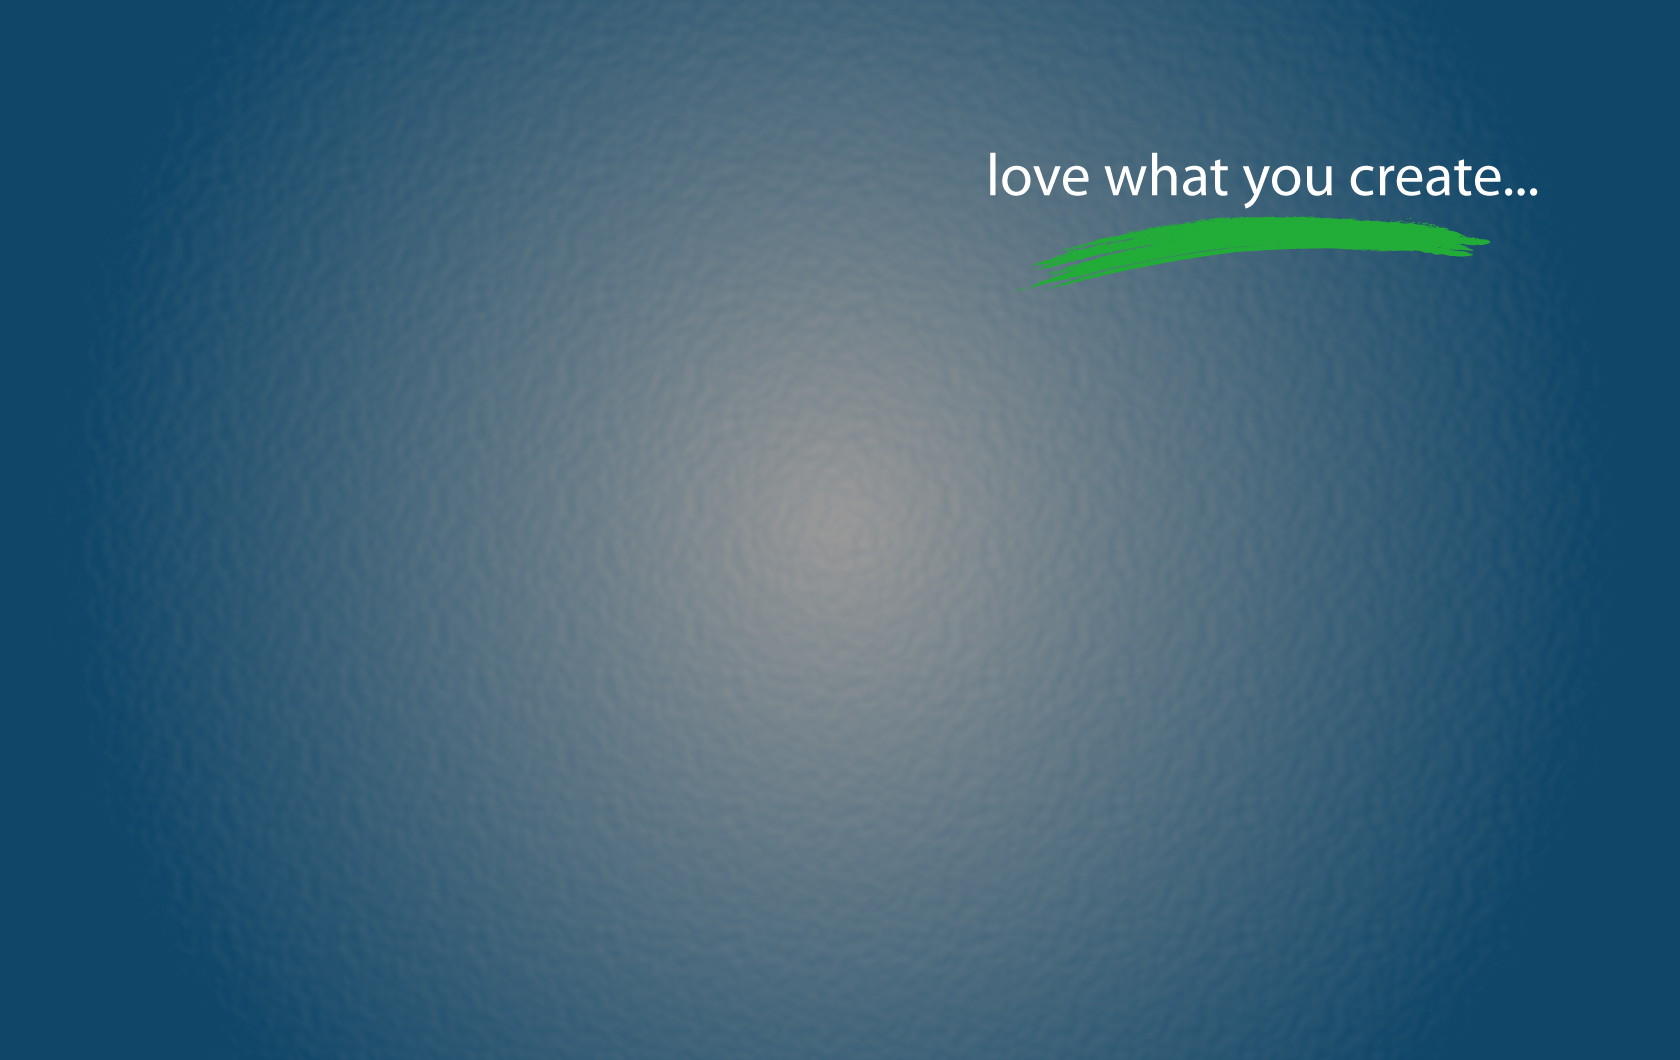 love what you create desktop background leeraito